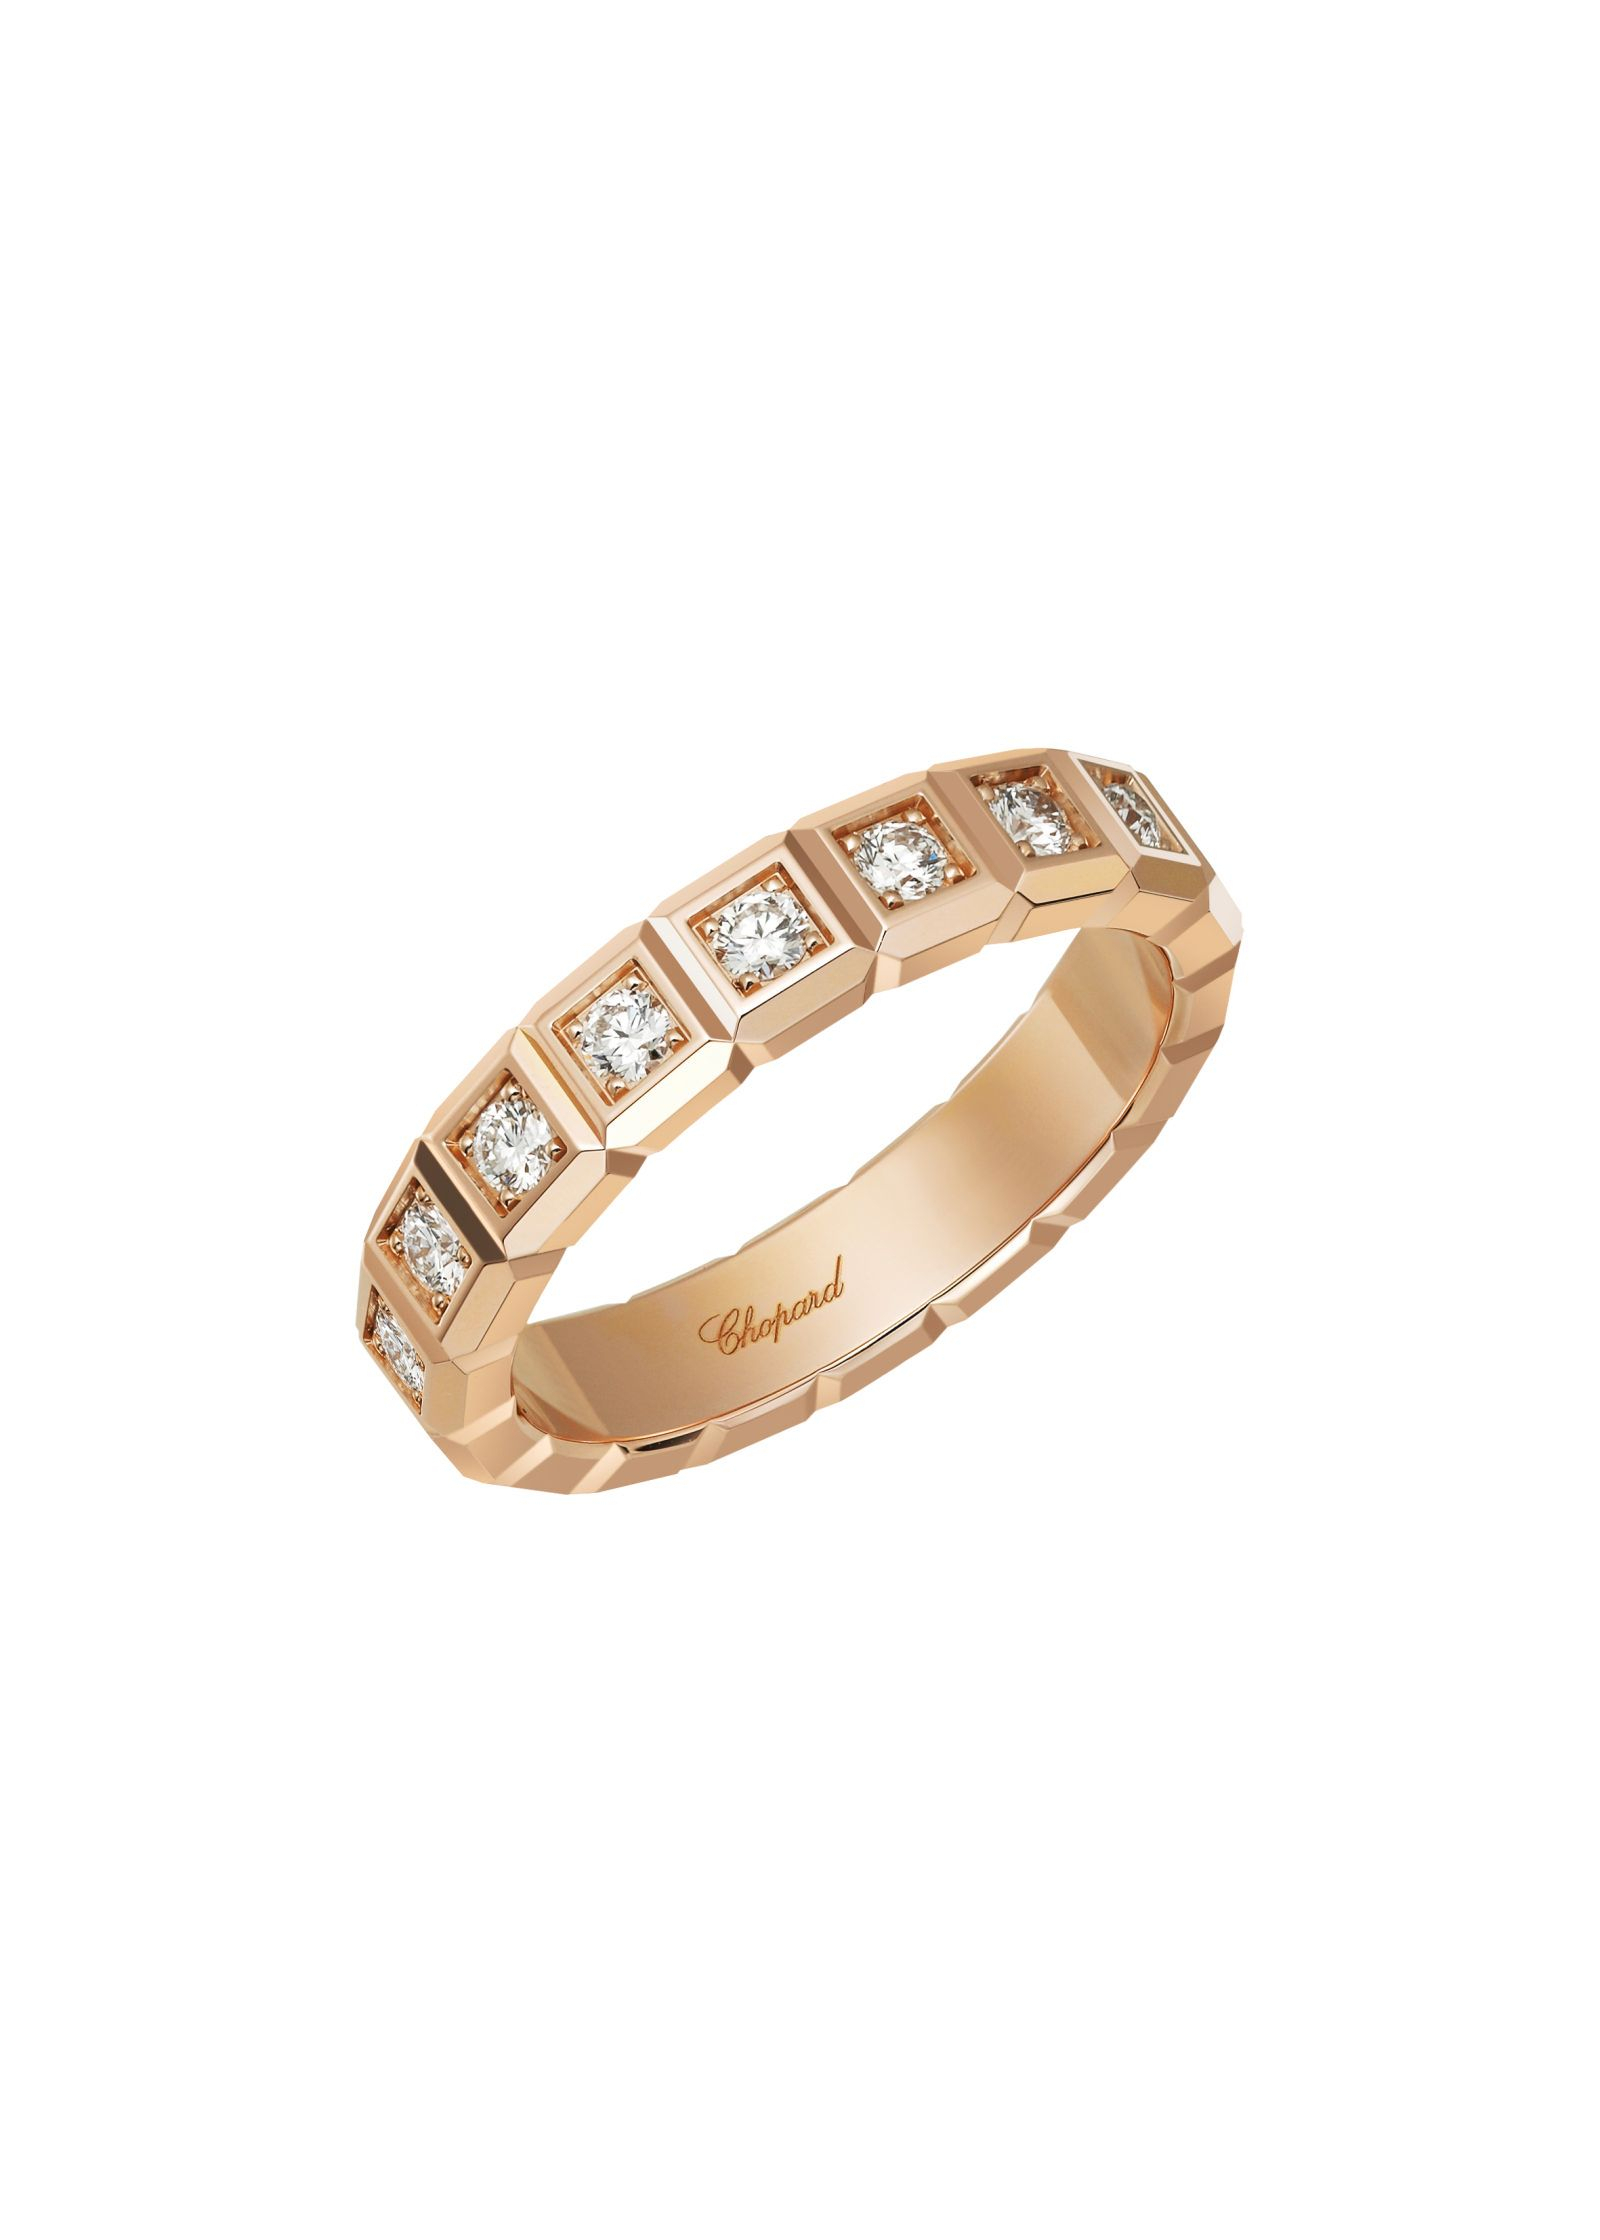 Ice Cube Ring 18K Rose Gold And Diamonds @829834 5099 – Chopard For Most Current Sparkling Ice Cube Rings (View 15 of 25)